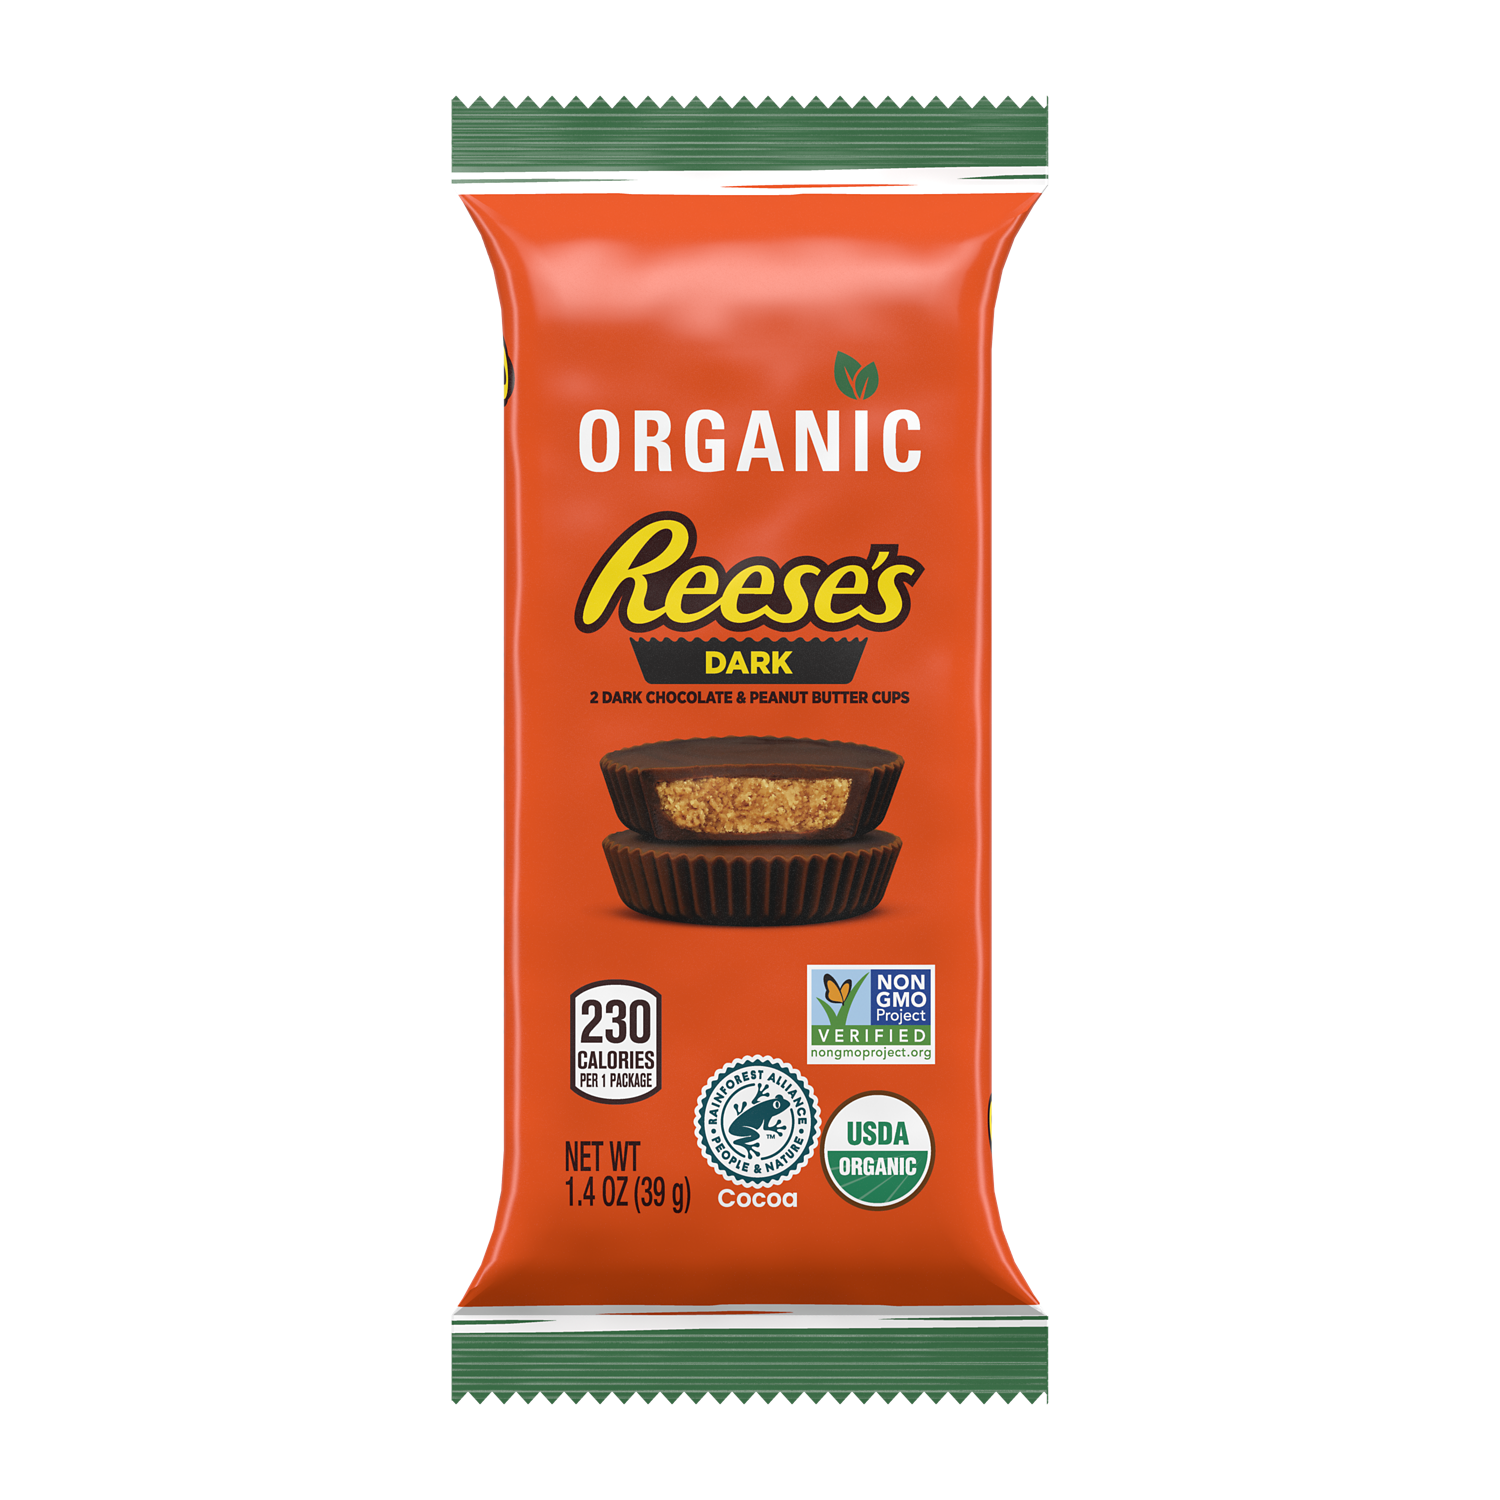 REESE'S Organic Dark Chocolate Peanut Butter Cups, 1.4 oz - Front of Package